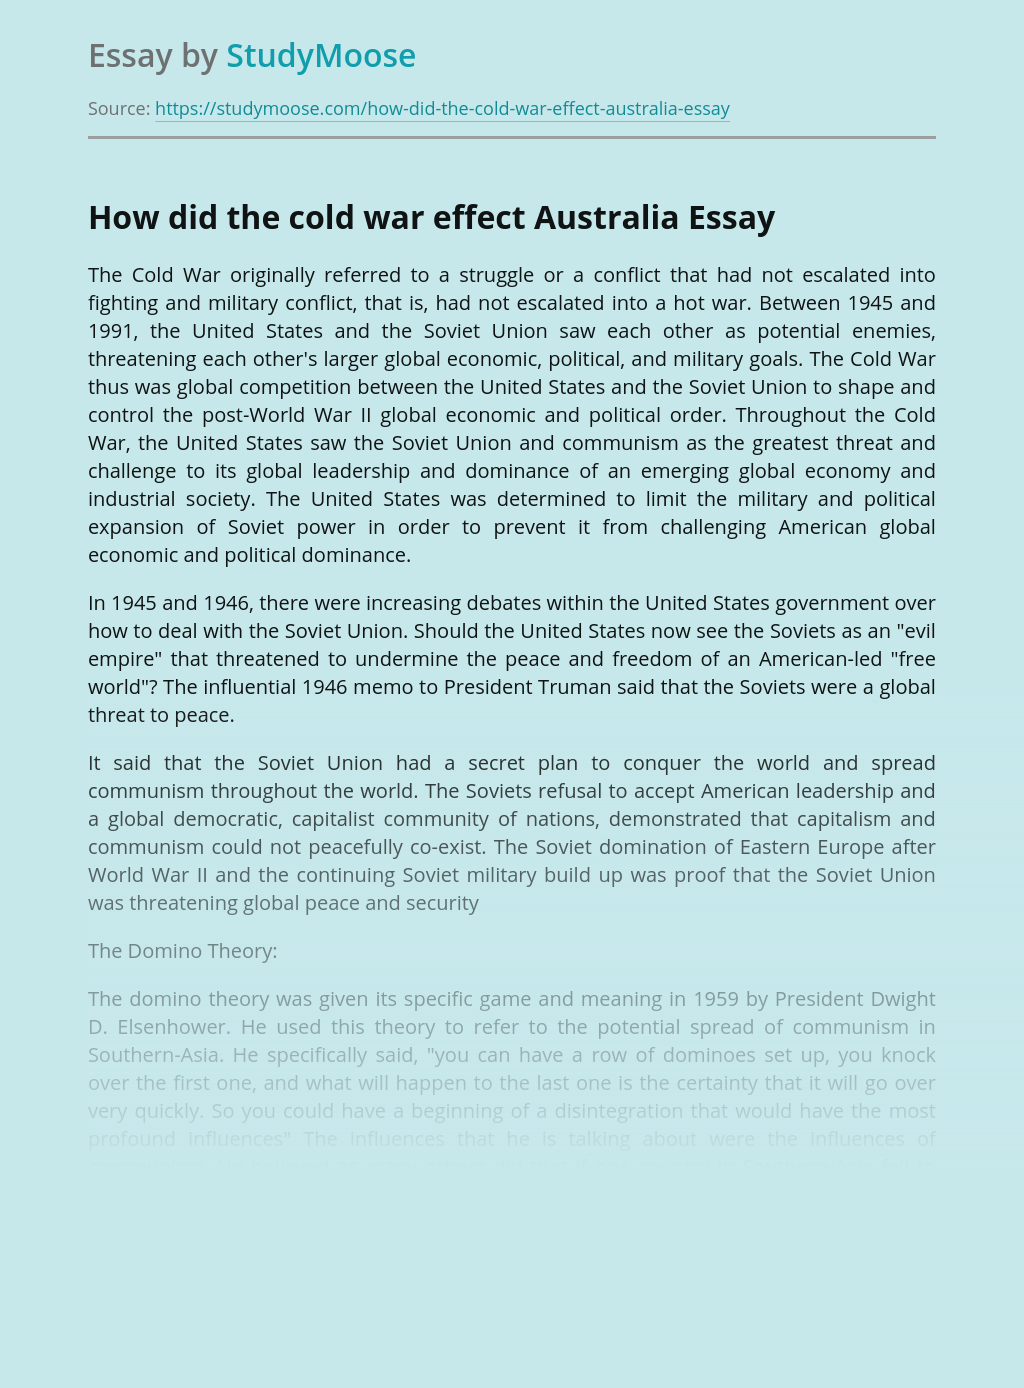 How did the cold war effect Australia